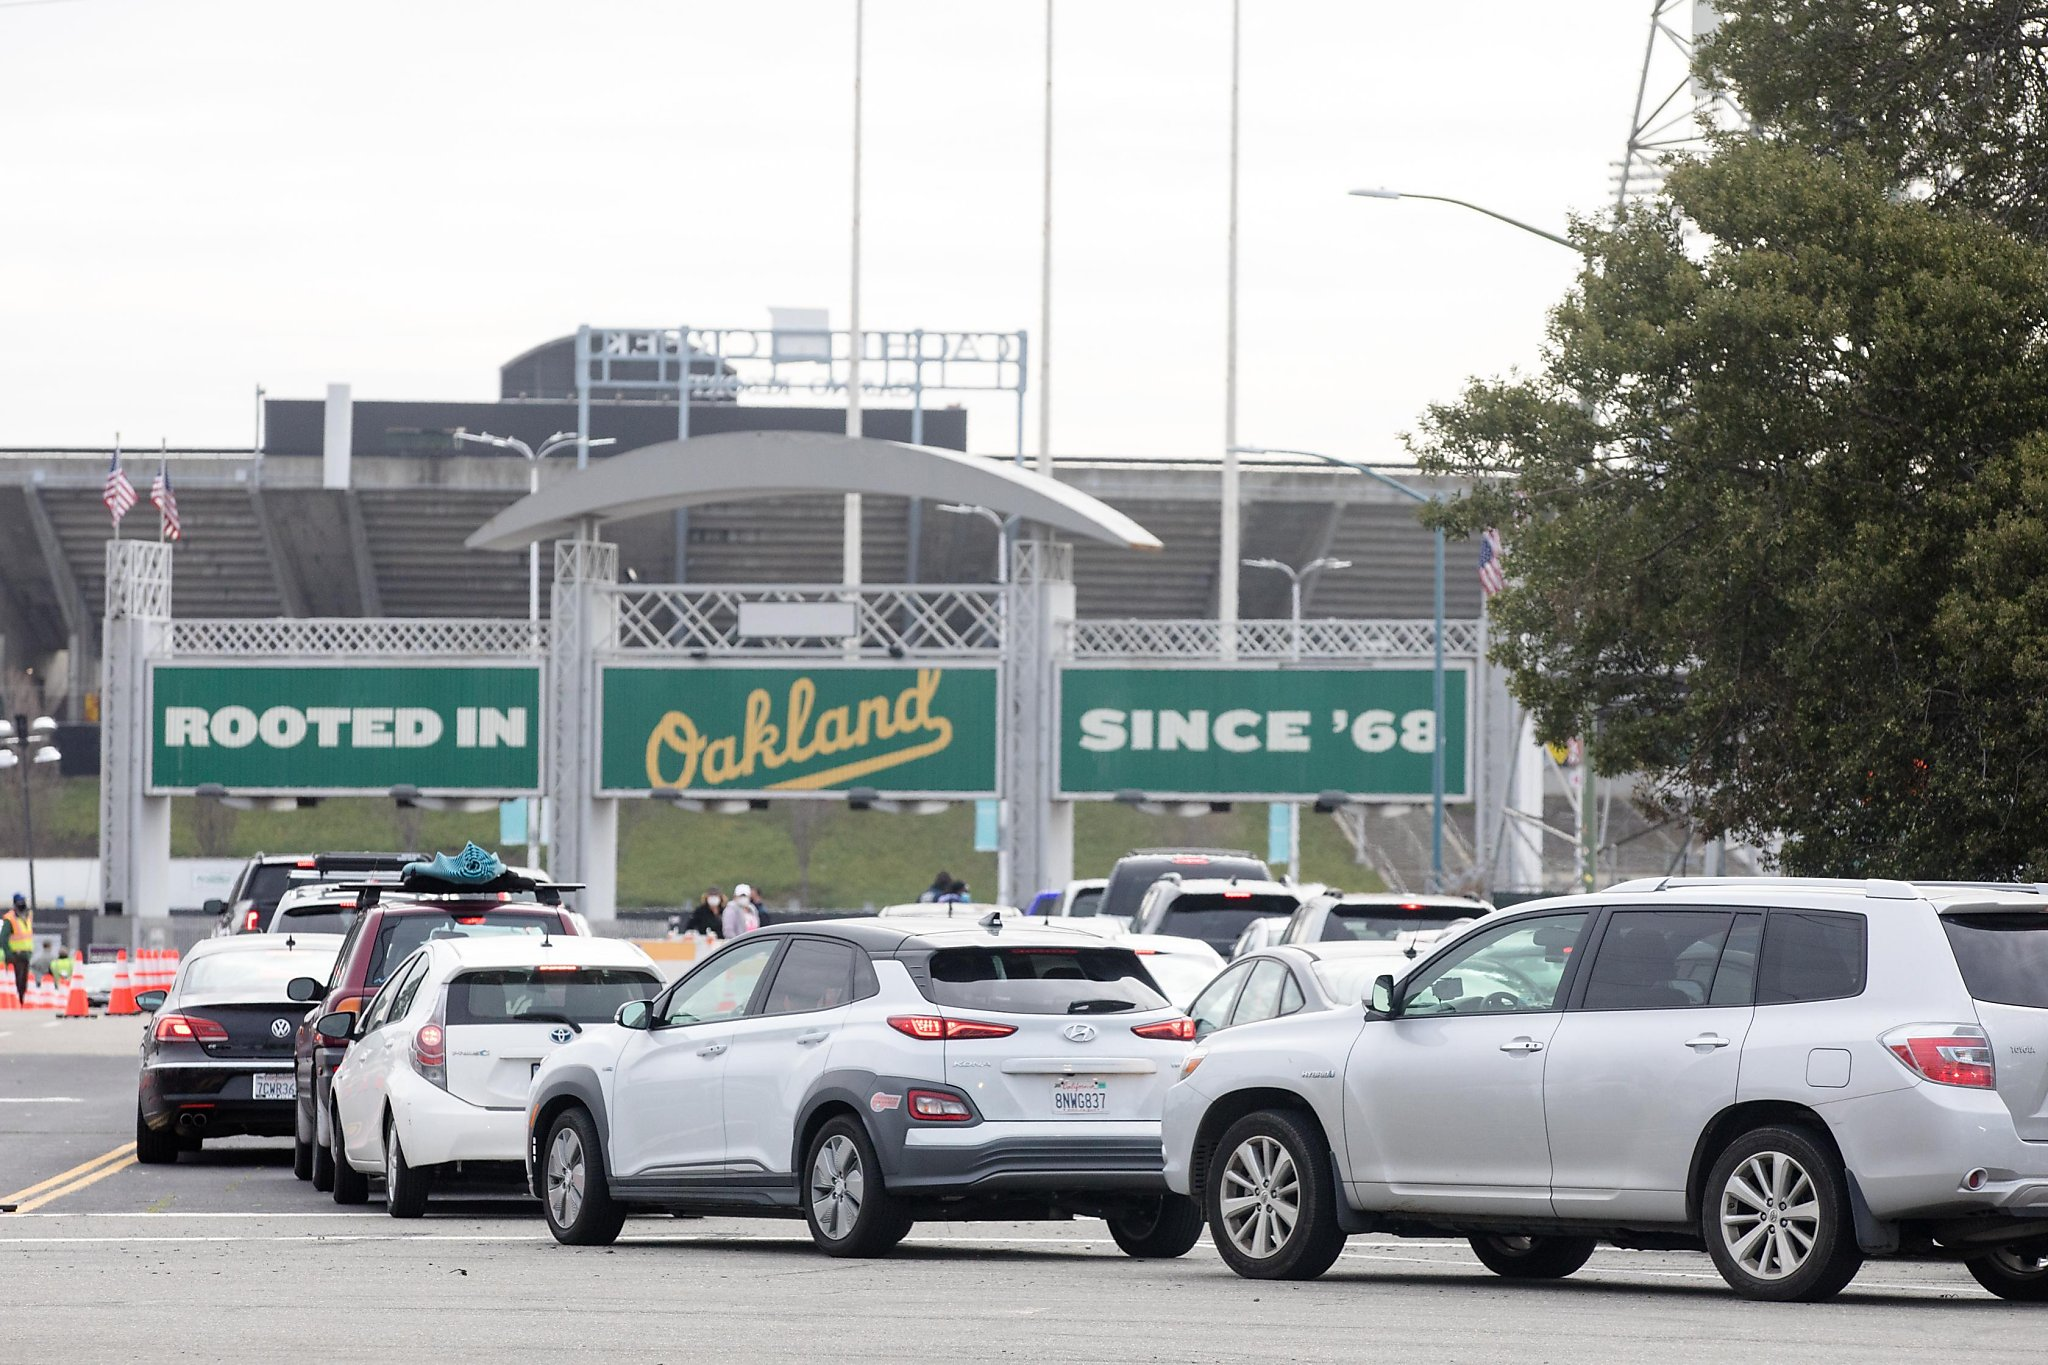 State says 6,300 people were underdosed at Oakland Coliseum - SF Gate